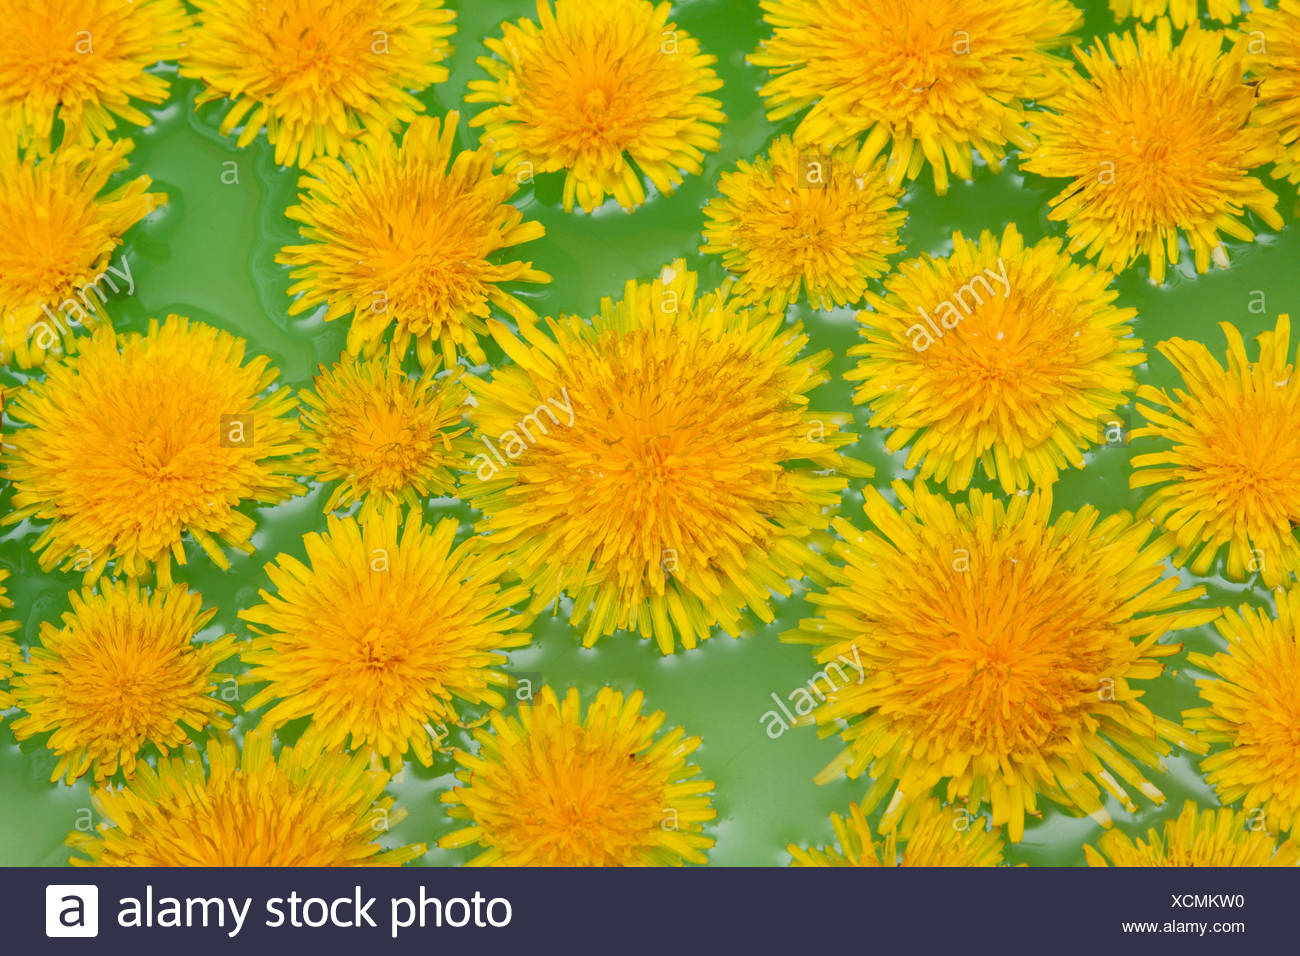 Yellow dandelions sail on green water - Stock Image